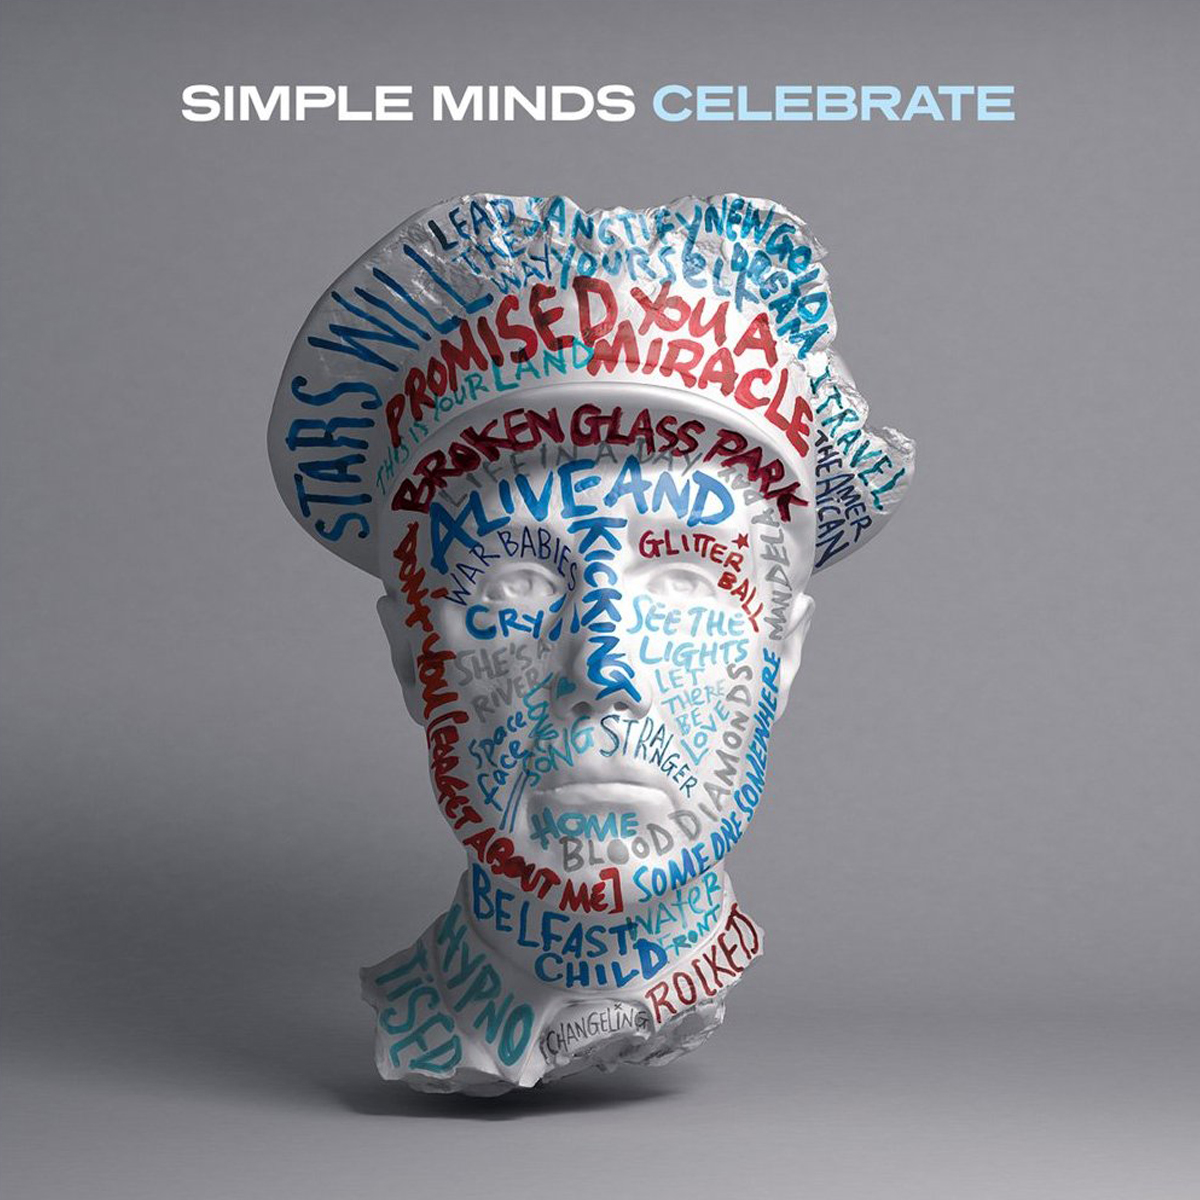 Simple Minds - Celebrate